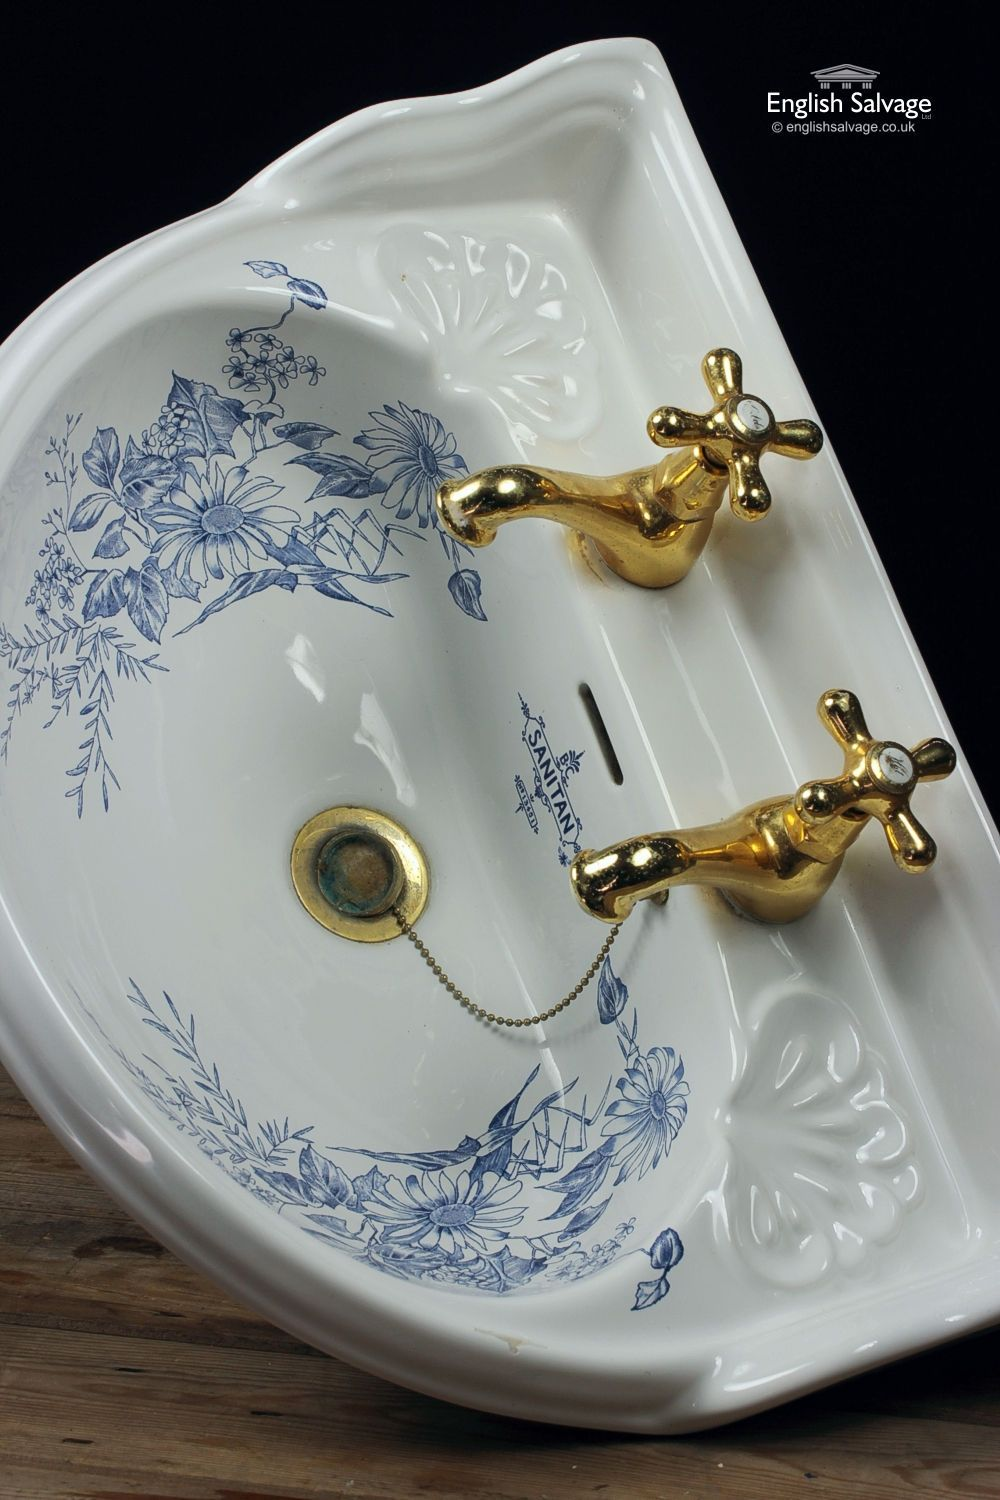 Shanks sink and stand reclaimed porcelain sinks and chrome stands - B C Sanitan Blue Floral Bathroom Suite